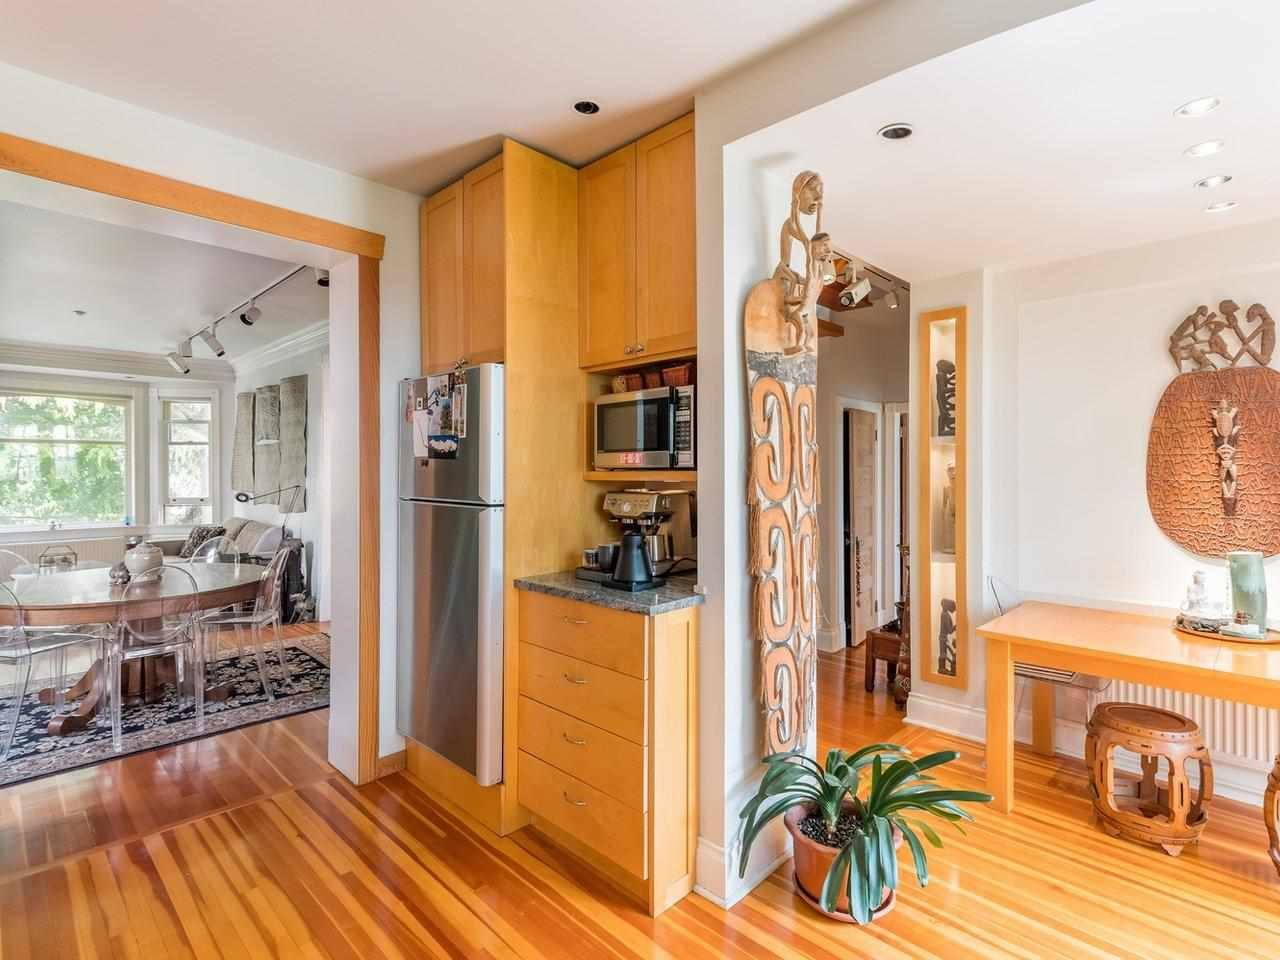 Photo 5: Photos: 2556 W 2ND Avenue in Vancouver: Kitsilano House for sale (Vancouver West)  : MLS®# R2593228